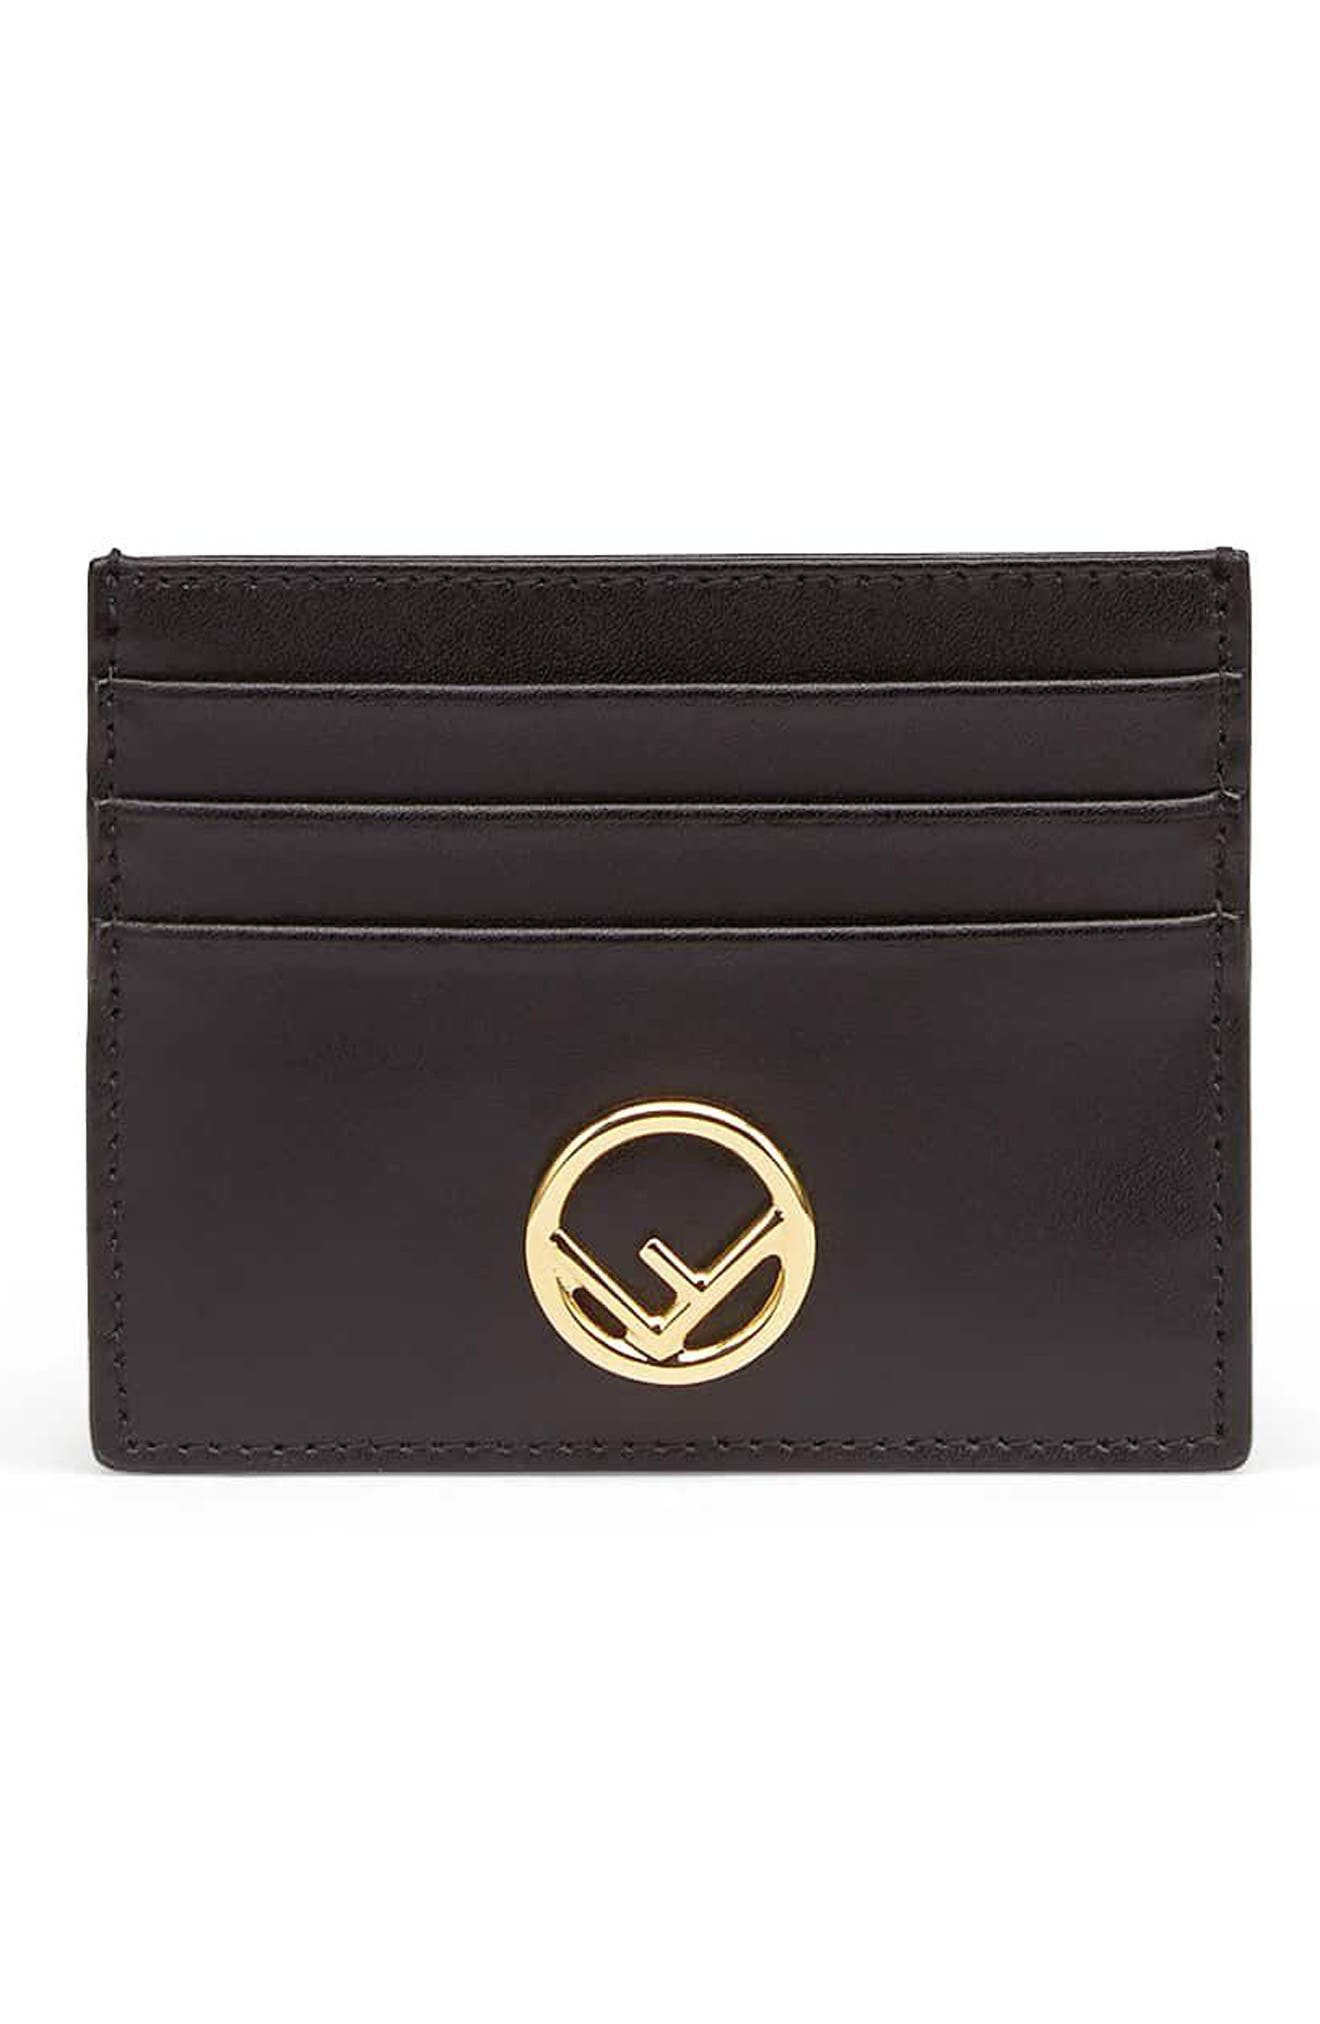 Logo Leather Card Case,                         Main,                         color, NERO/ ORO SOFT